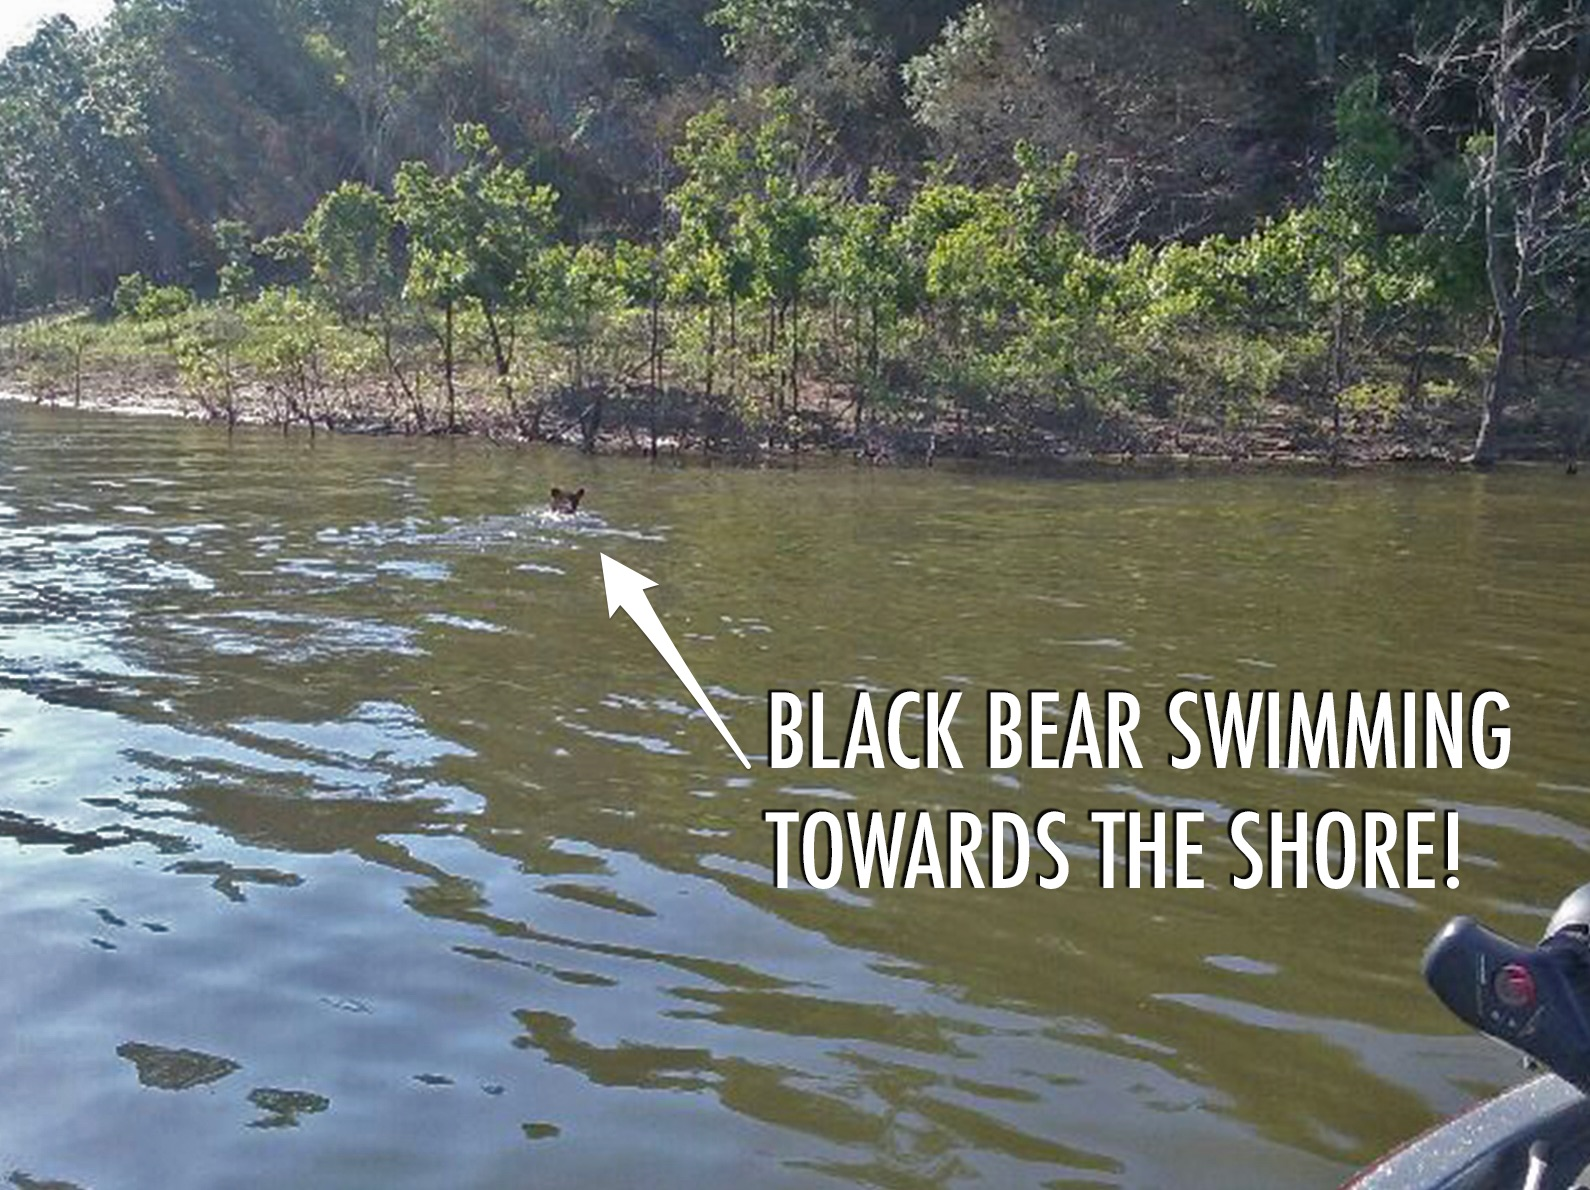 black-bear_swimming-in-lake-broken-bow-lake.jpg